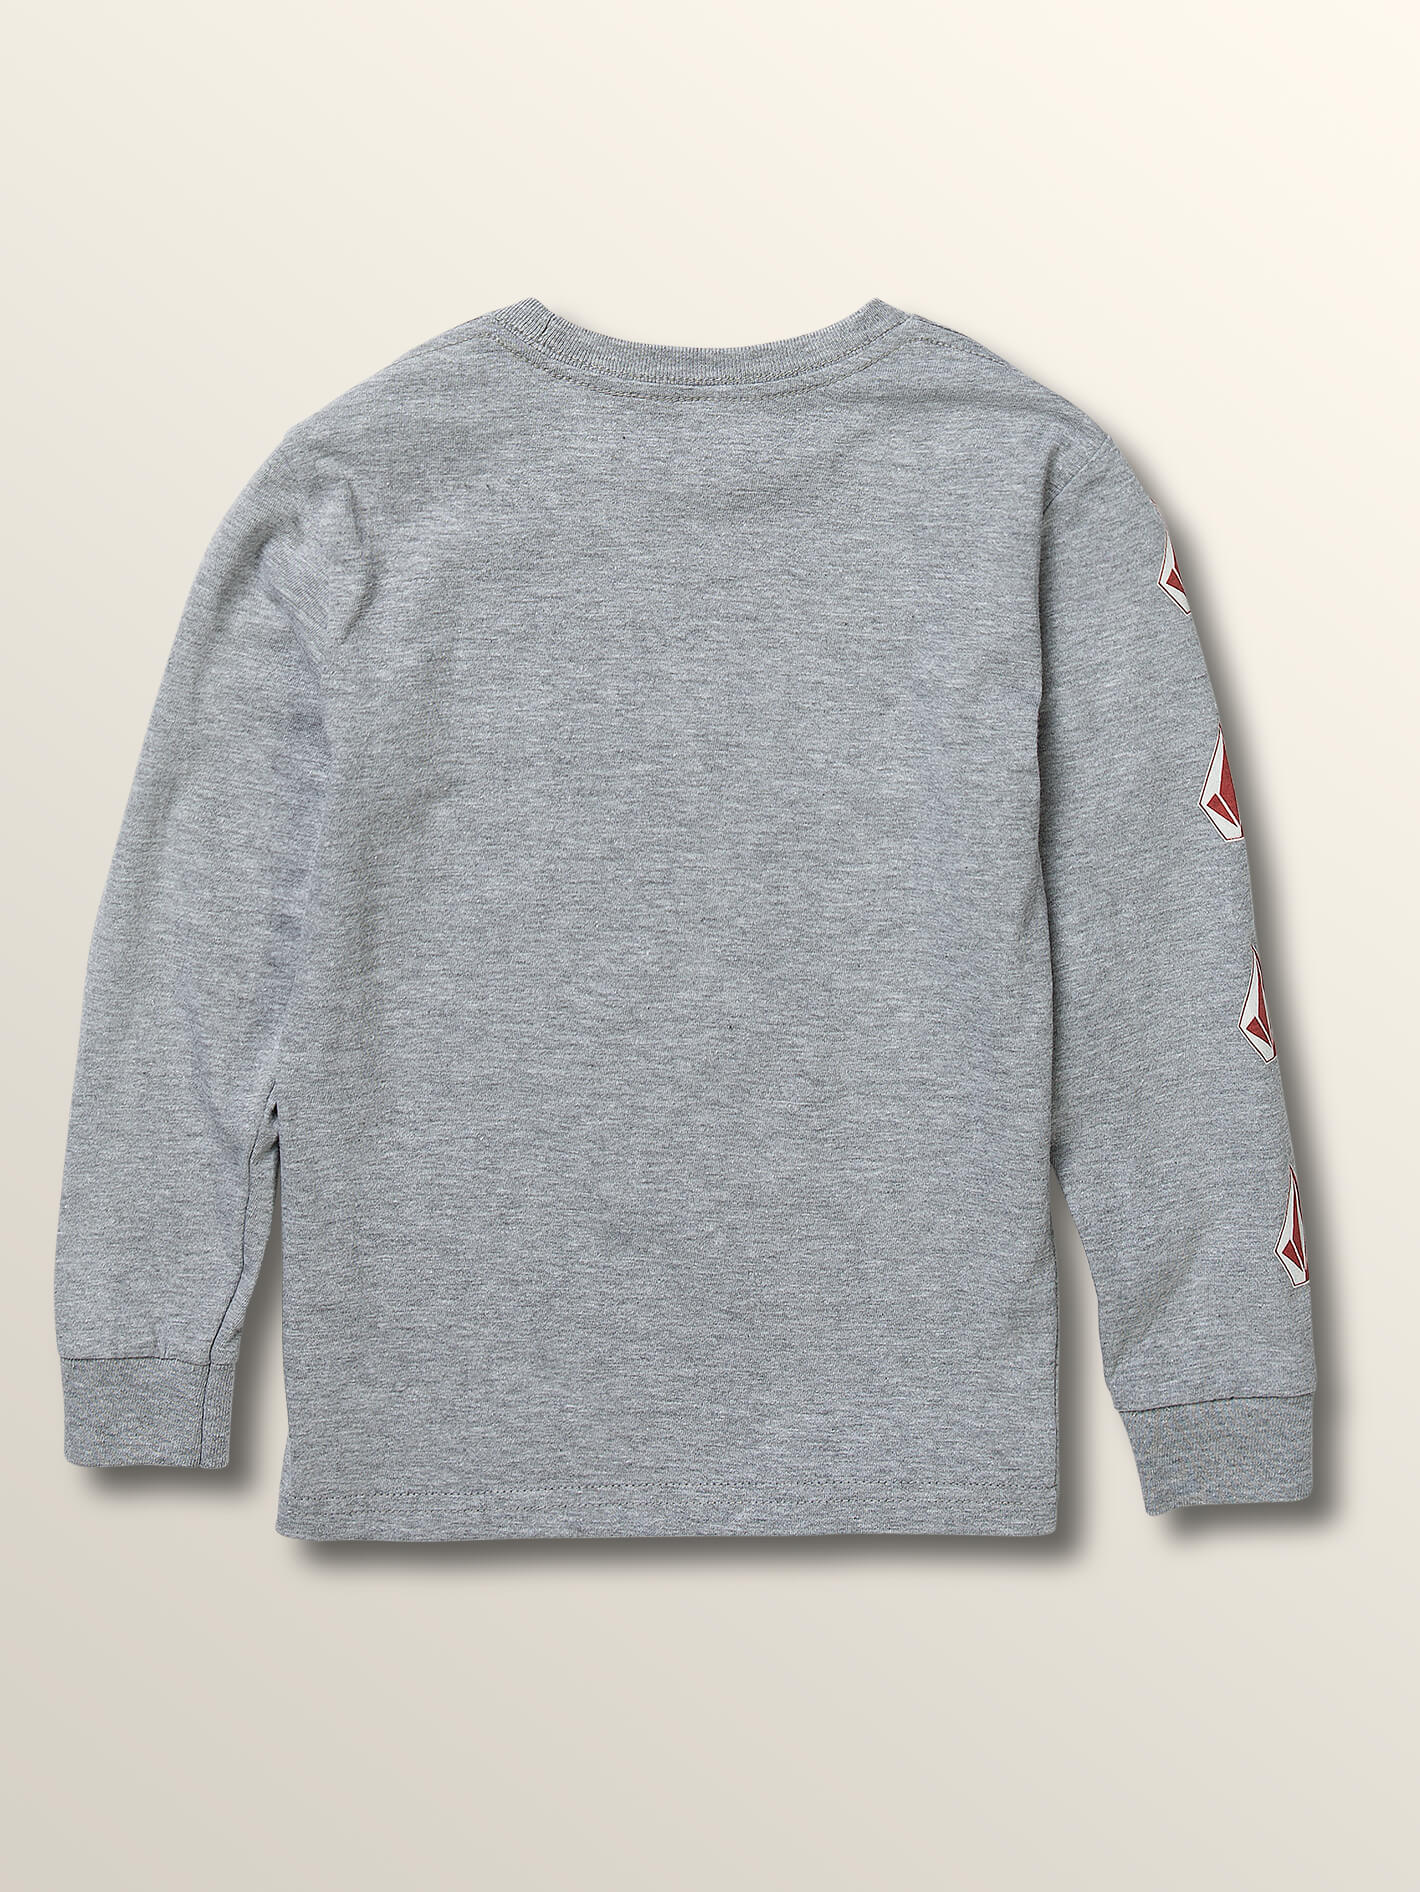 6a0253019 Little Boys Deadly Stones Long Sleeve Tee - Heather Grey in HEATHER GREY -  Alternative View